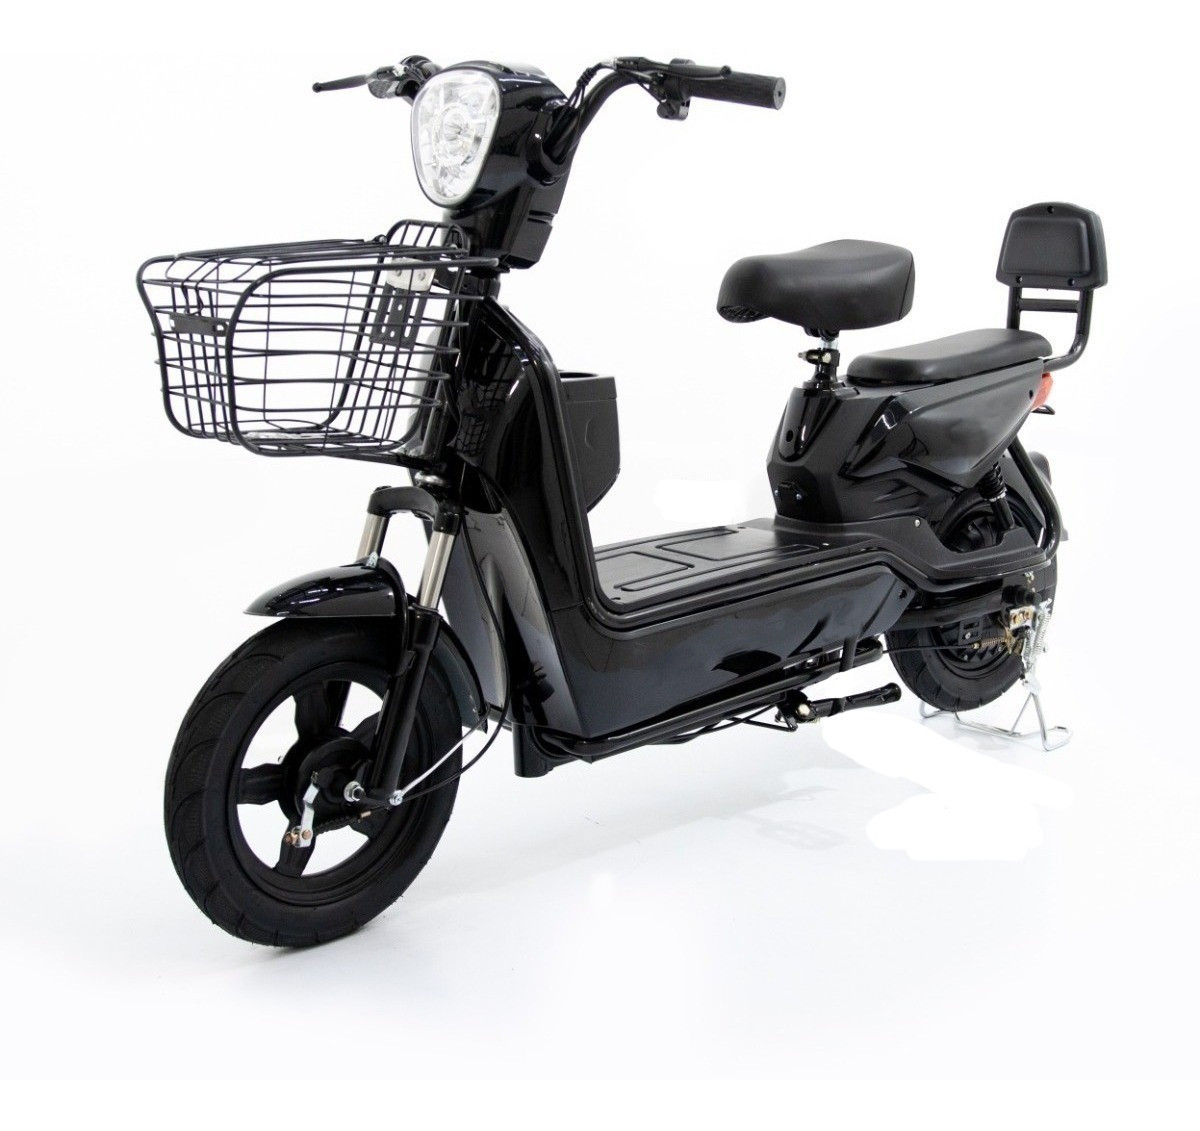 Scooter Patinete Elétrico Smart Ecobikes 350w 48v 12ah